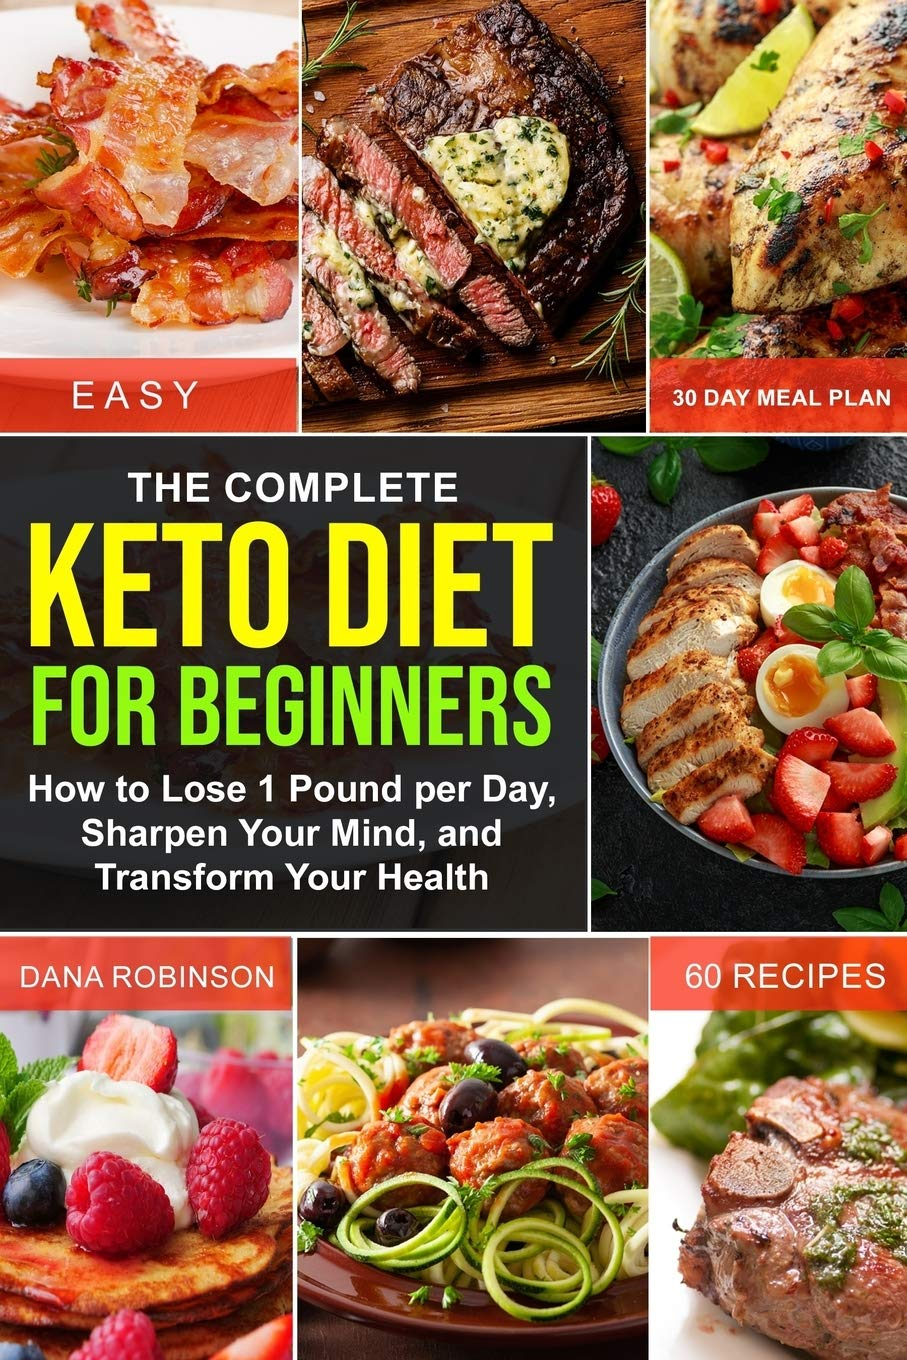 The Complete Keto Diet For Beginners How To Lose 1 Pound Per Day Sharpen Your Mind And Transform Your Health 60 Low Carb Recipes 30 Day Meal Plan Keto Diet Intermittent Fasting For